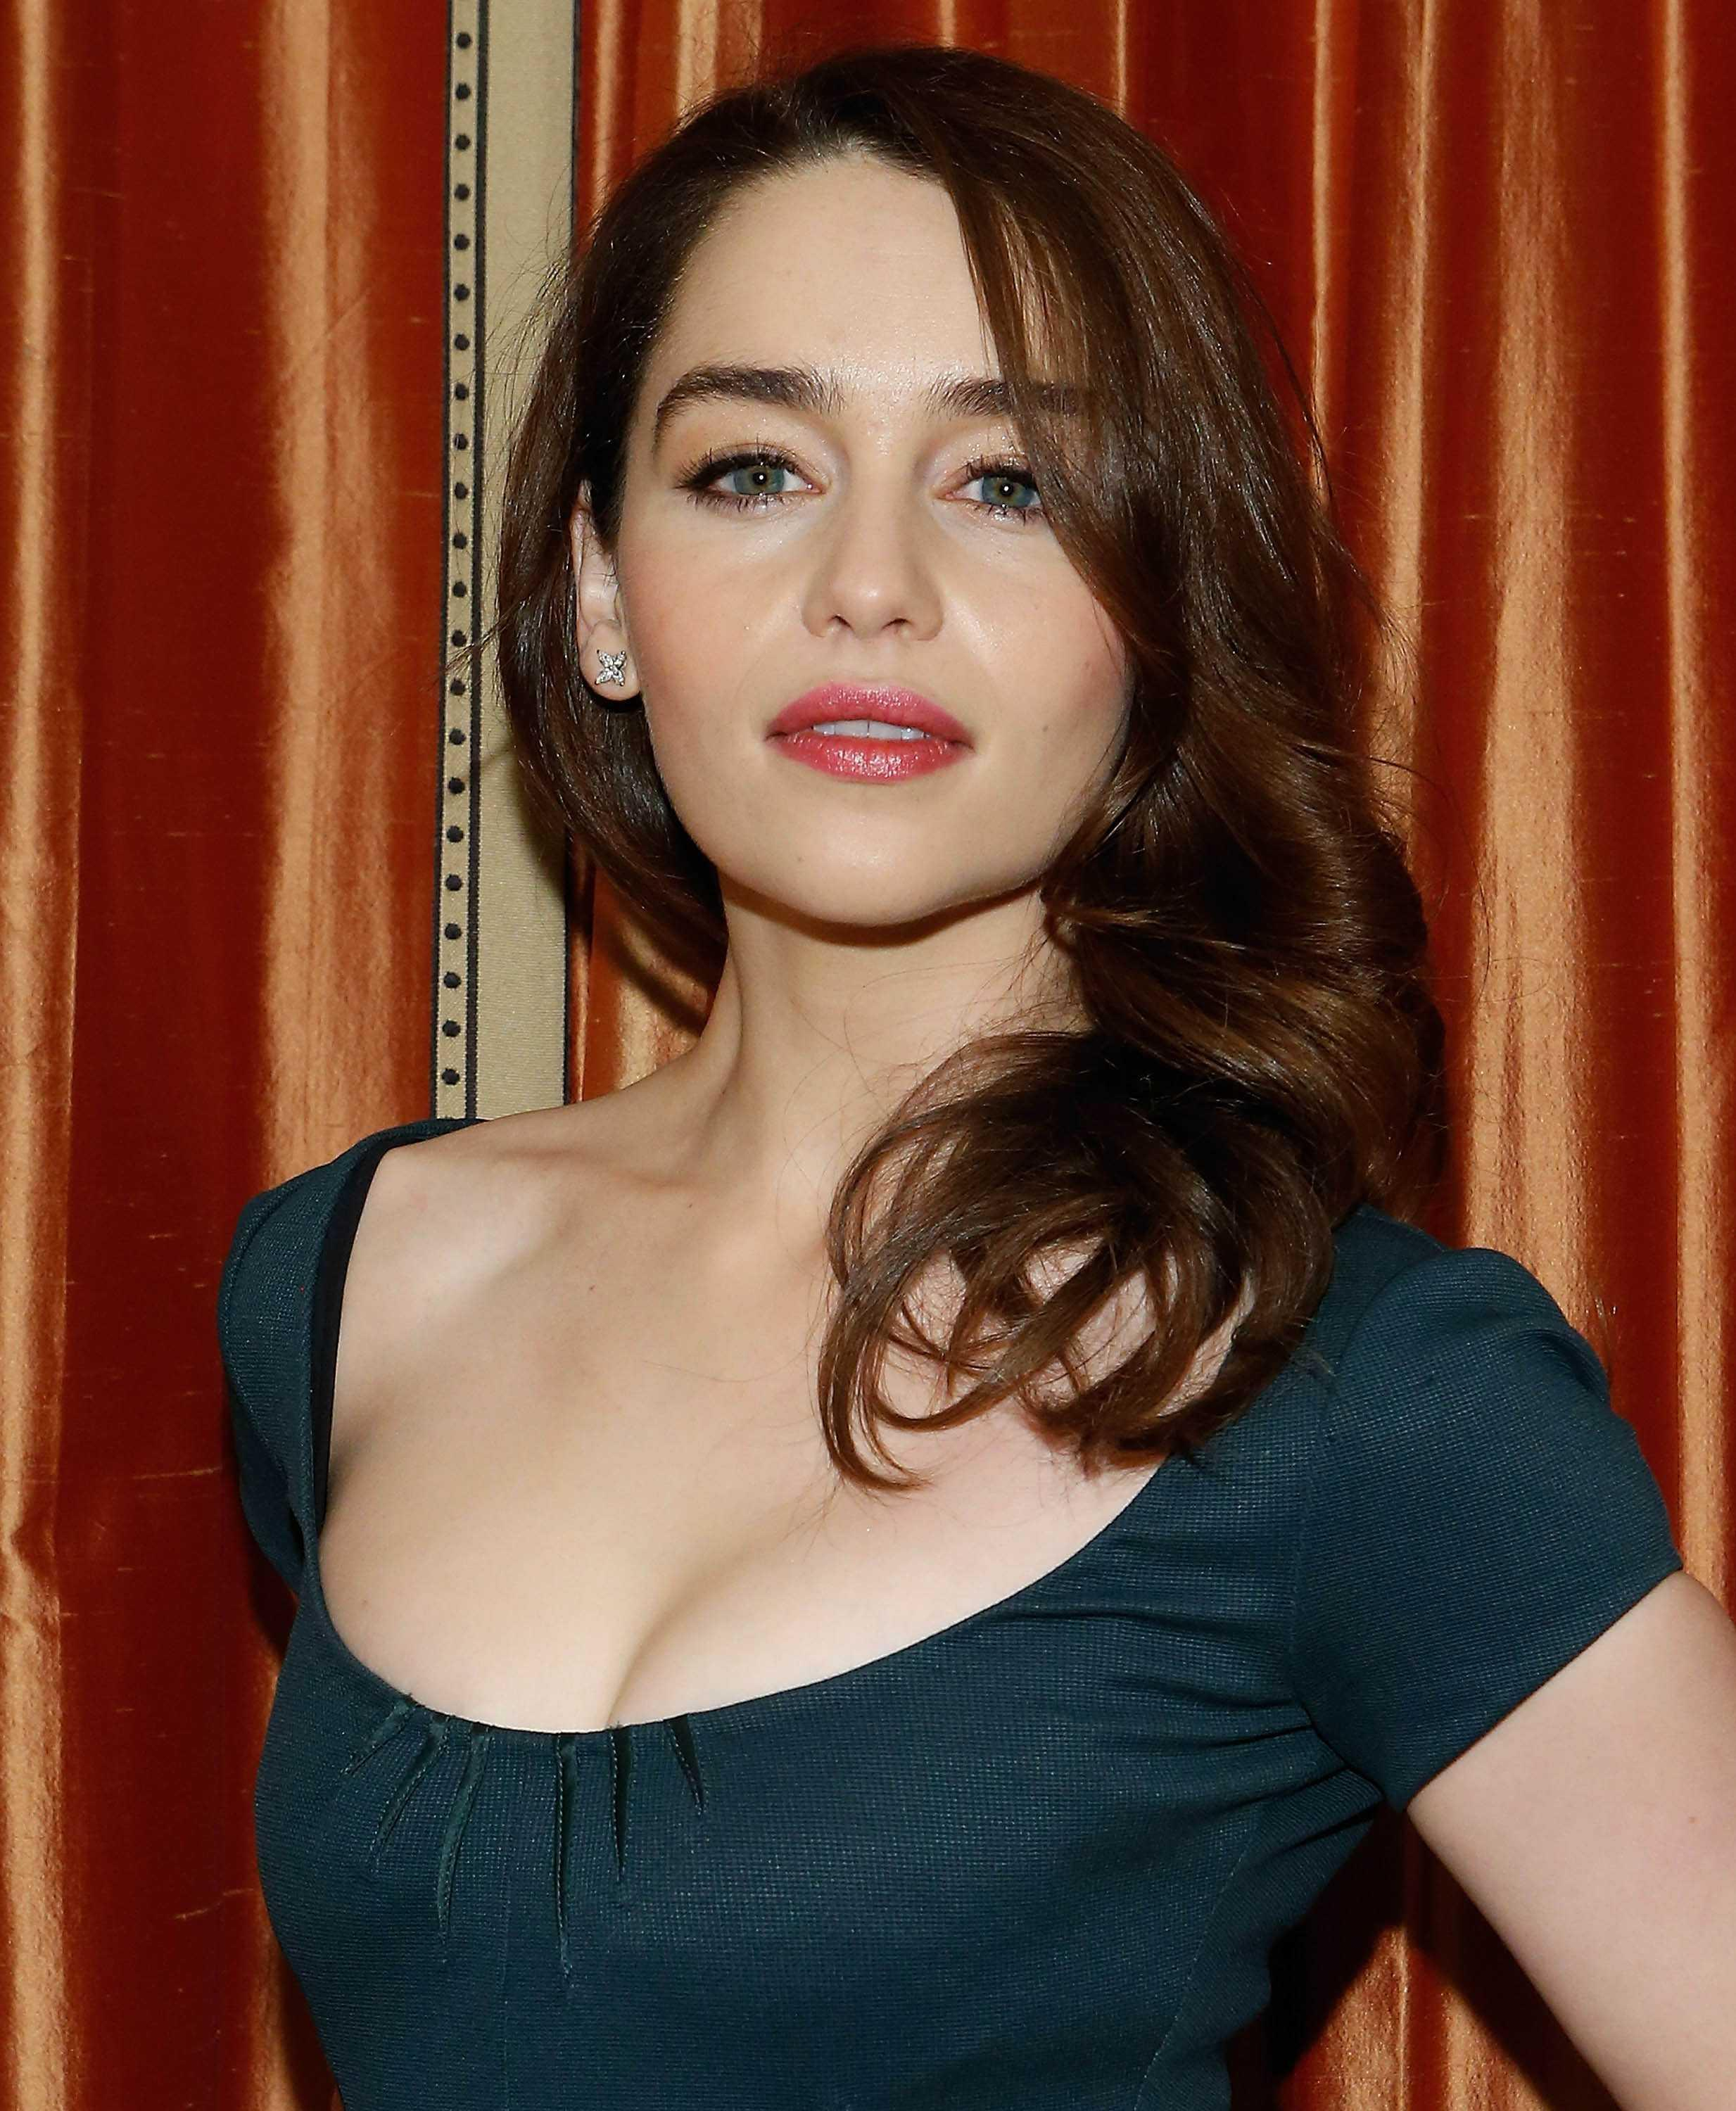 emilia-clarke-green-dress-brea-4013